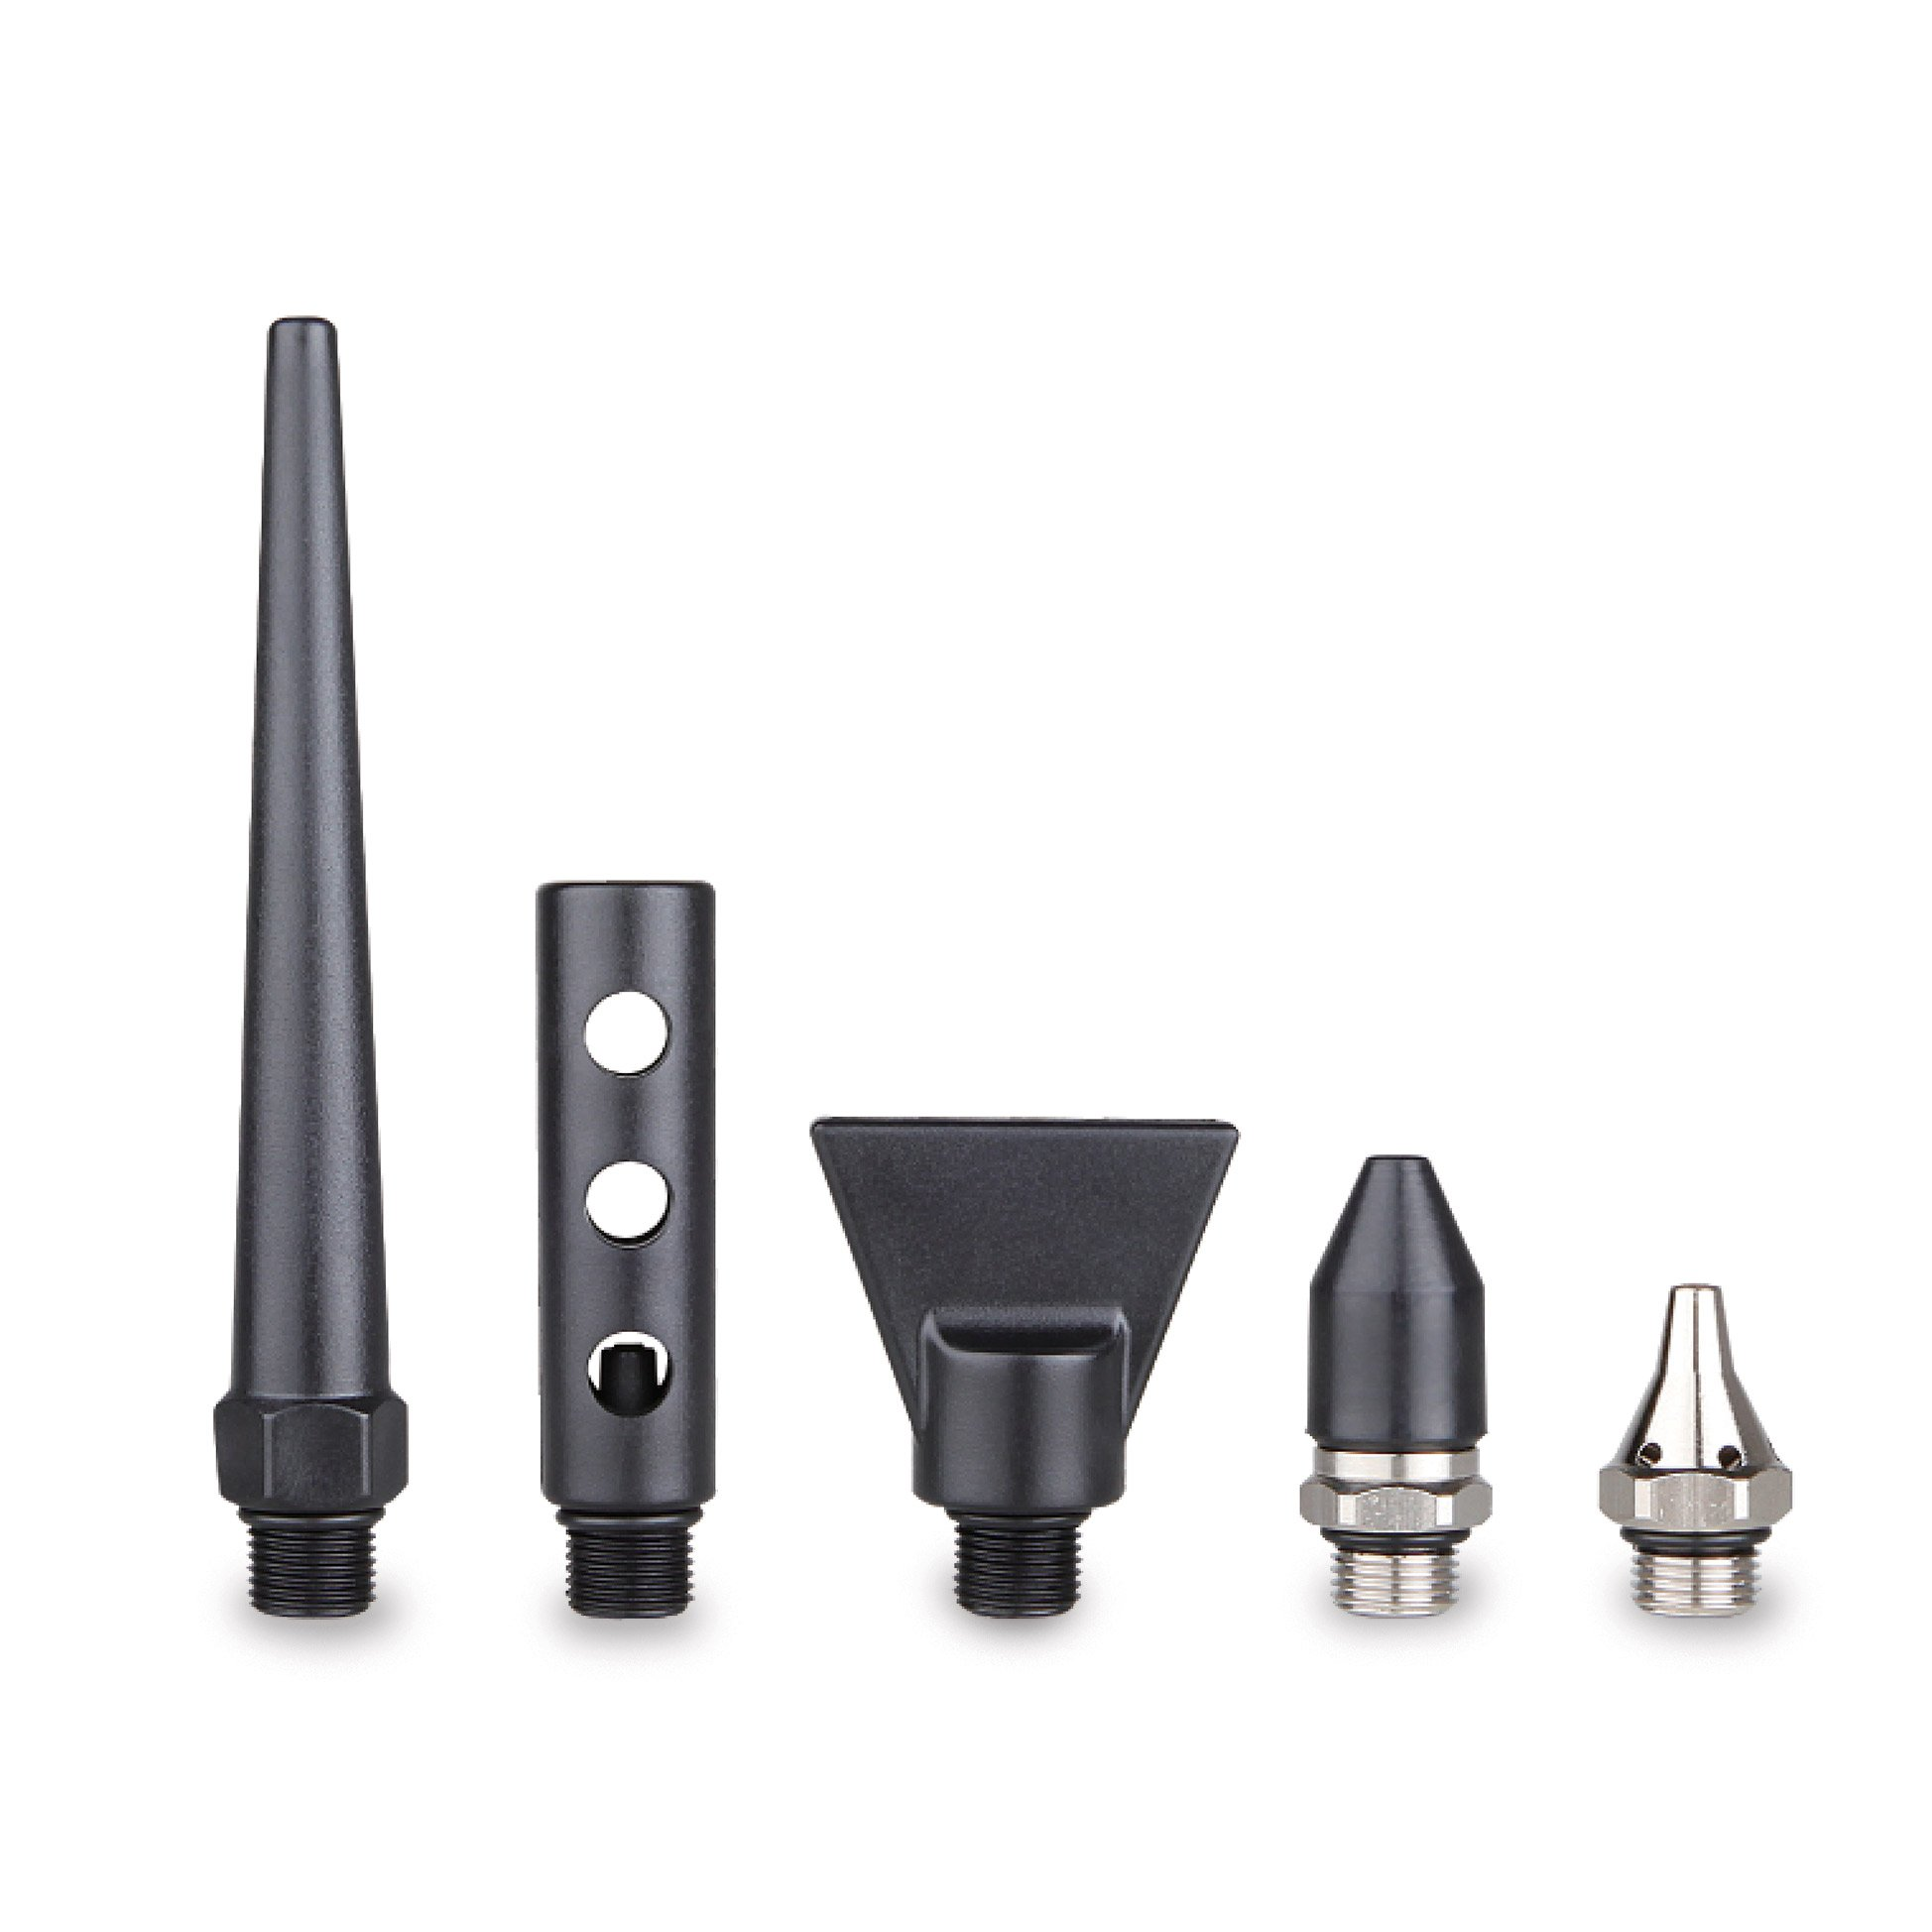 5-Piece Nozzle Set for Capri Tools 2-Way Air Blow Gun